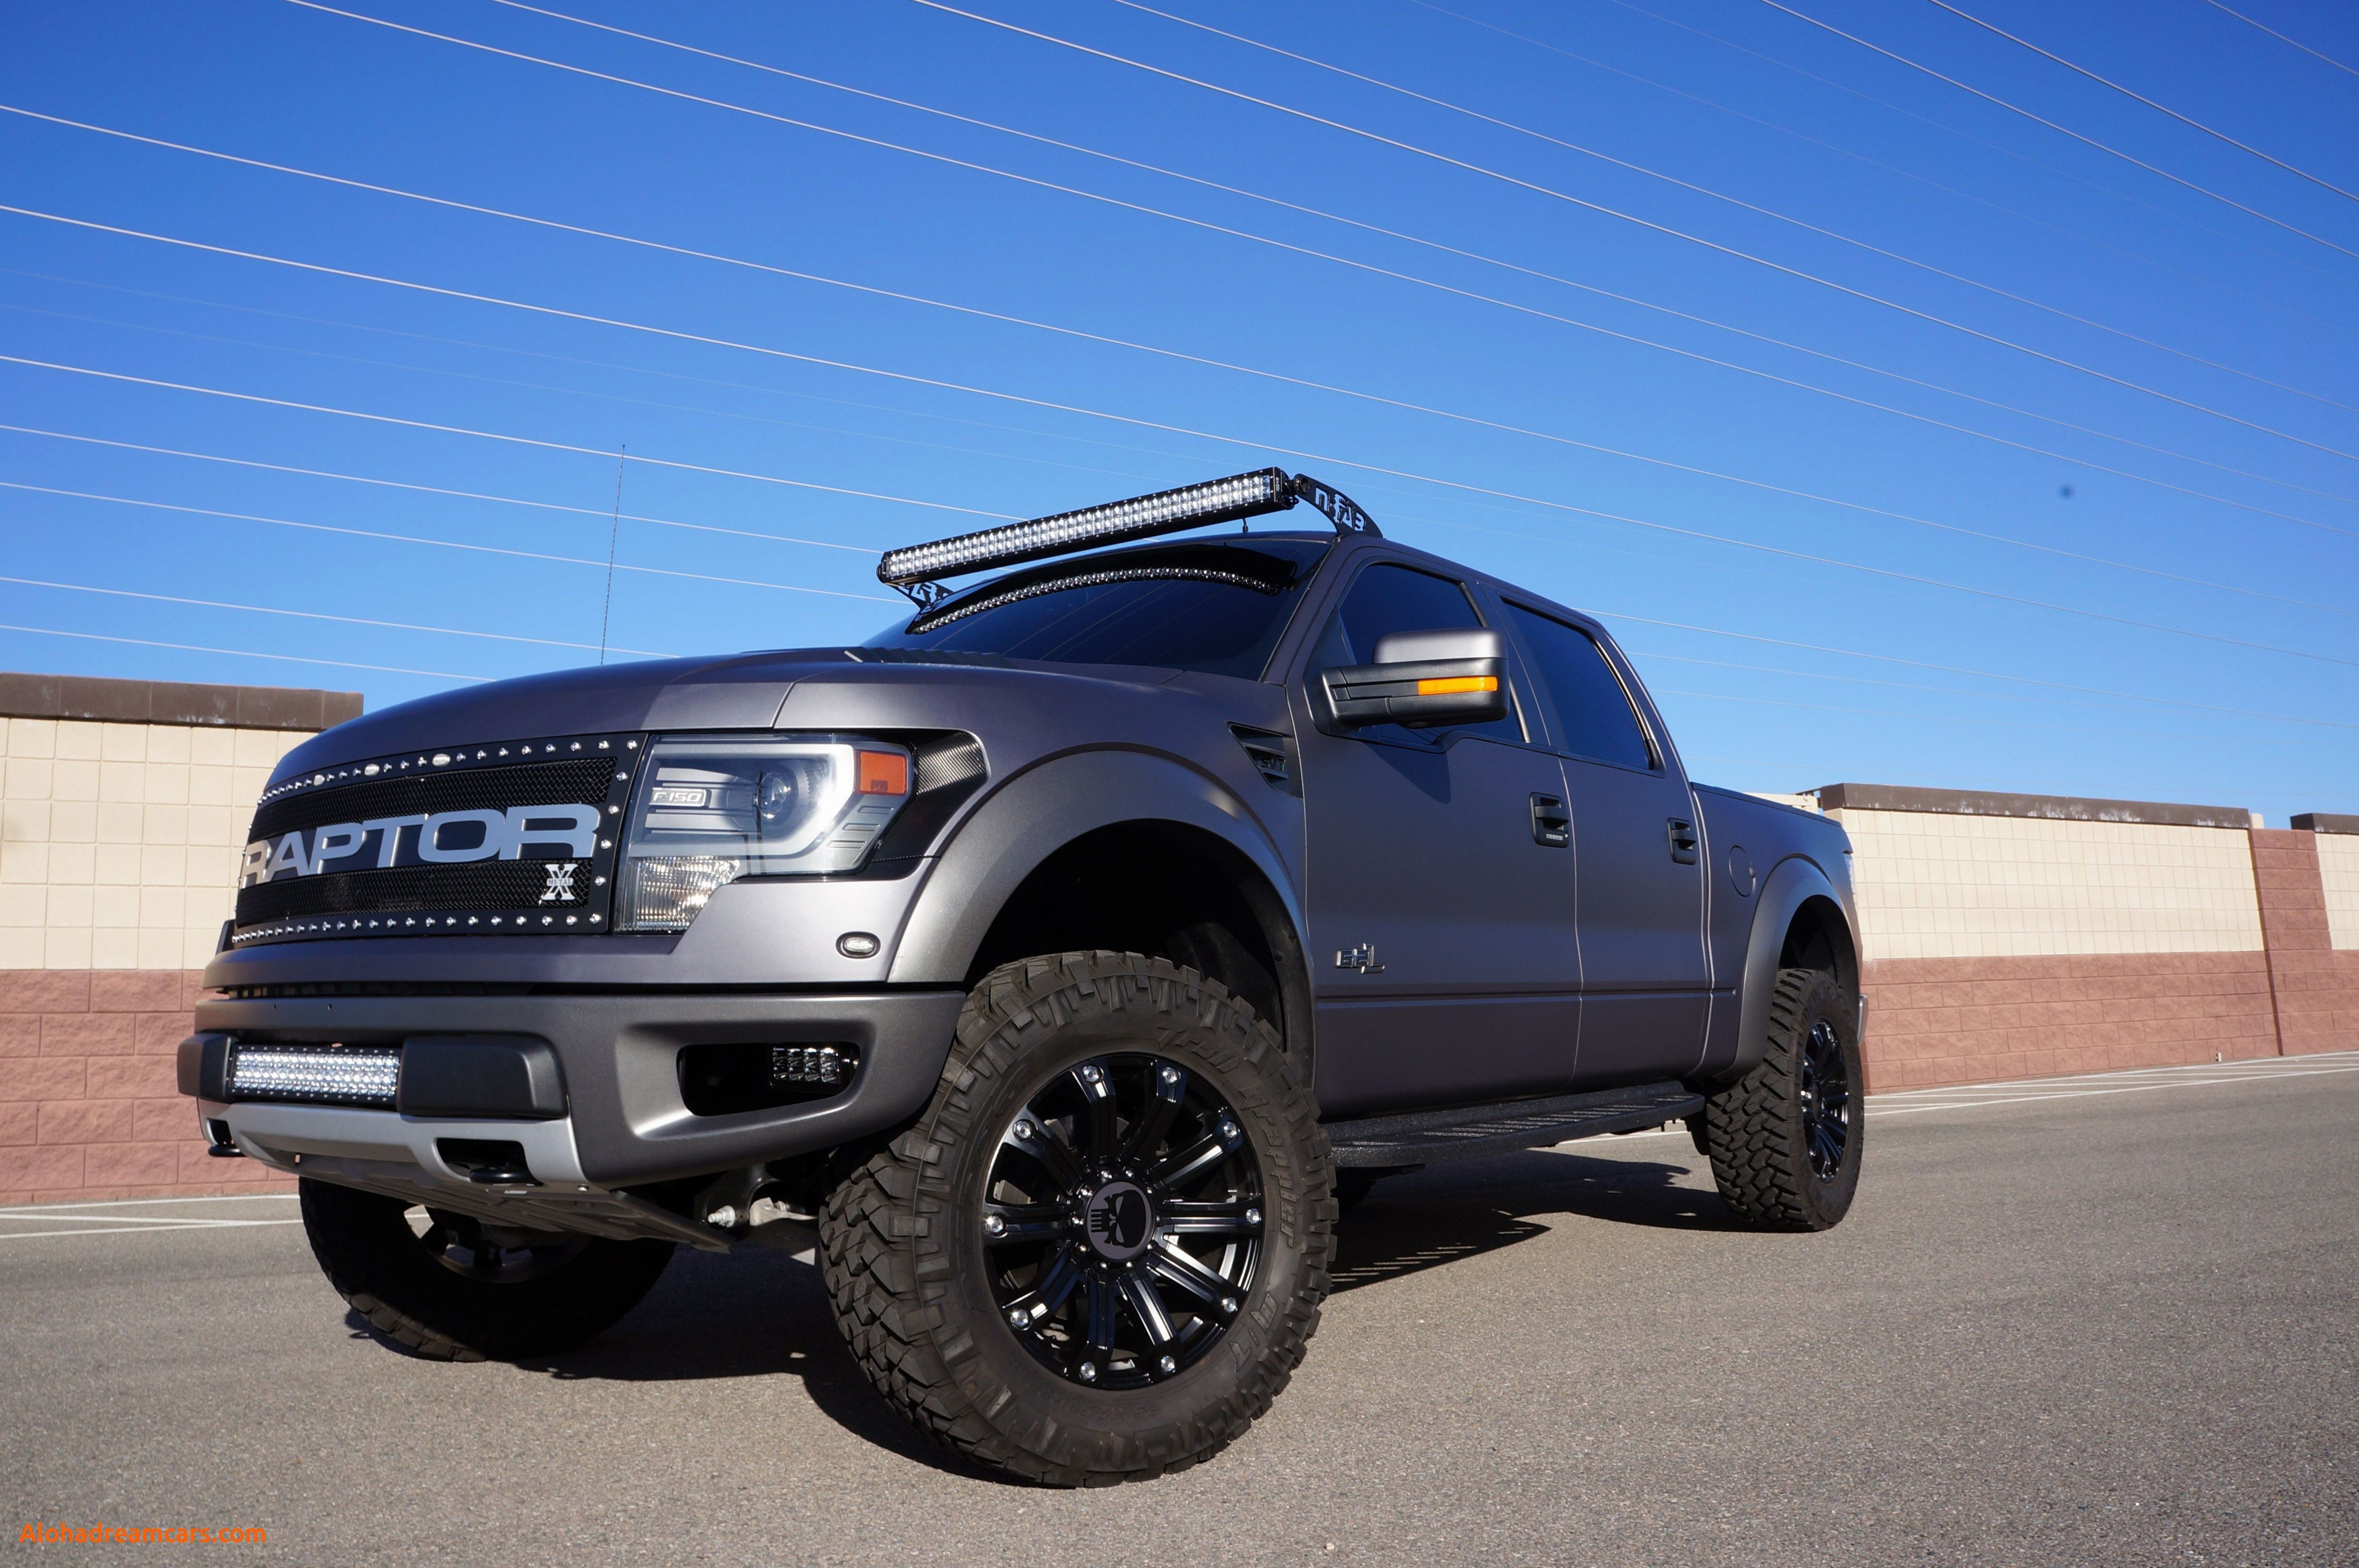 2019 Ford Svt Bronco Raptor Check More At Http Www Autocarblog Club 2018 05 02 2019 Ford Svt Bronco Raptor Desert ford truck full hd wallpapers